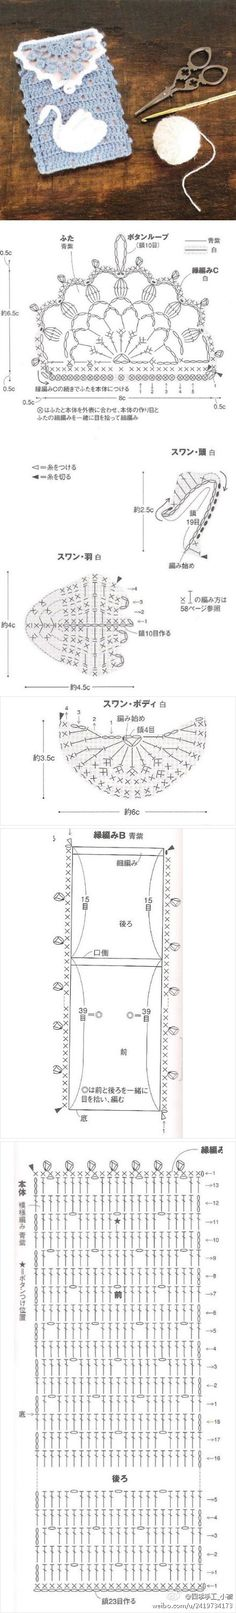 PRECIOUS FINDINGS: Cell phone case with diagram, what you see here is what you get. My friend has been asking for one, uhmm maybe ill try this.--- this can call be alter and made as a bag pouch.